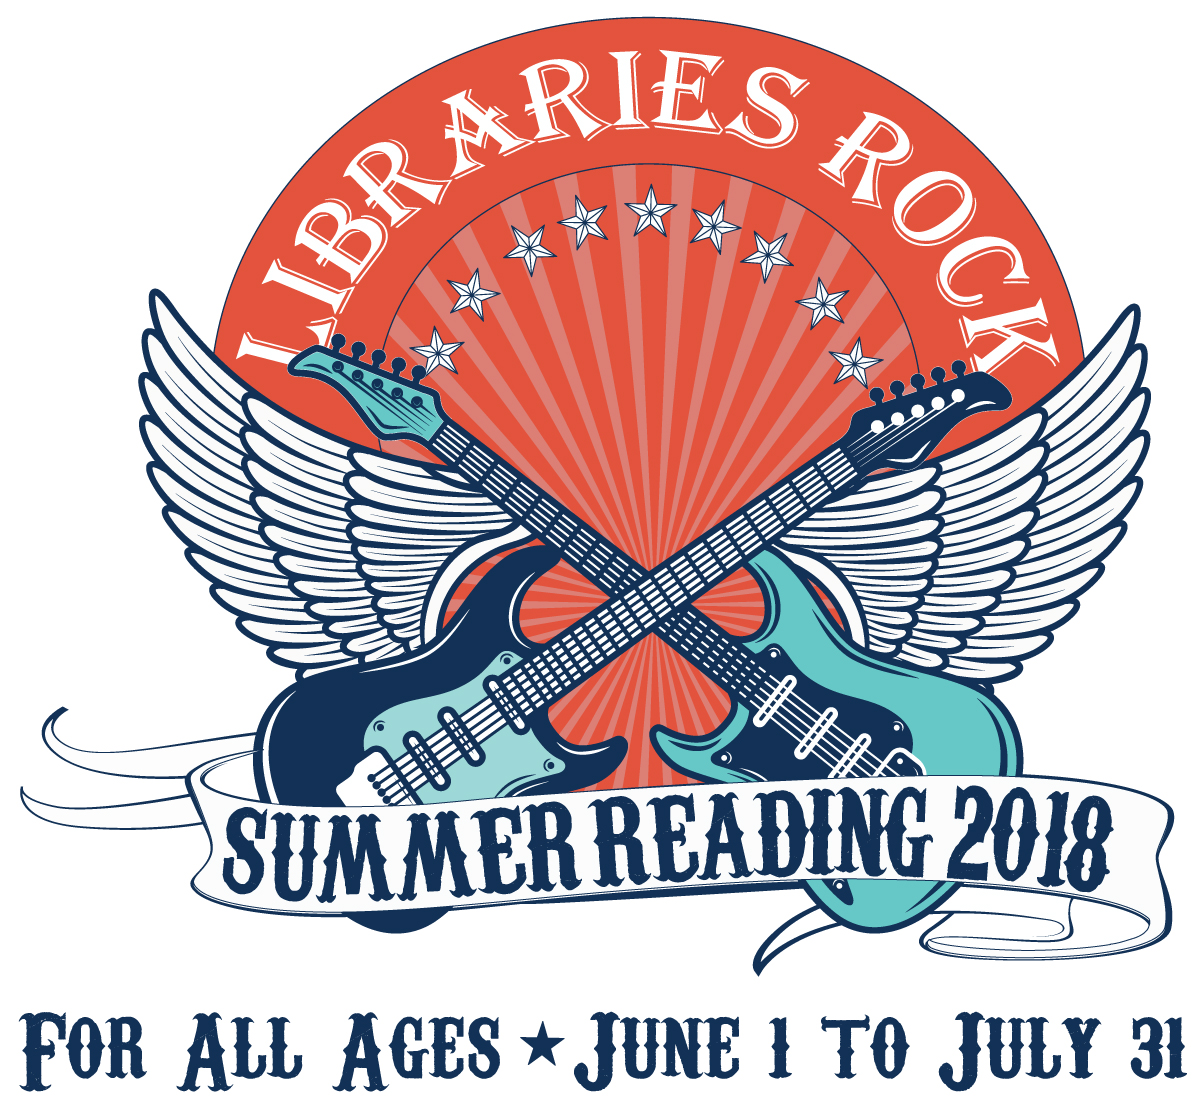 Libraries Rock Logo; For All Ages; June 1 - July 31